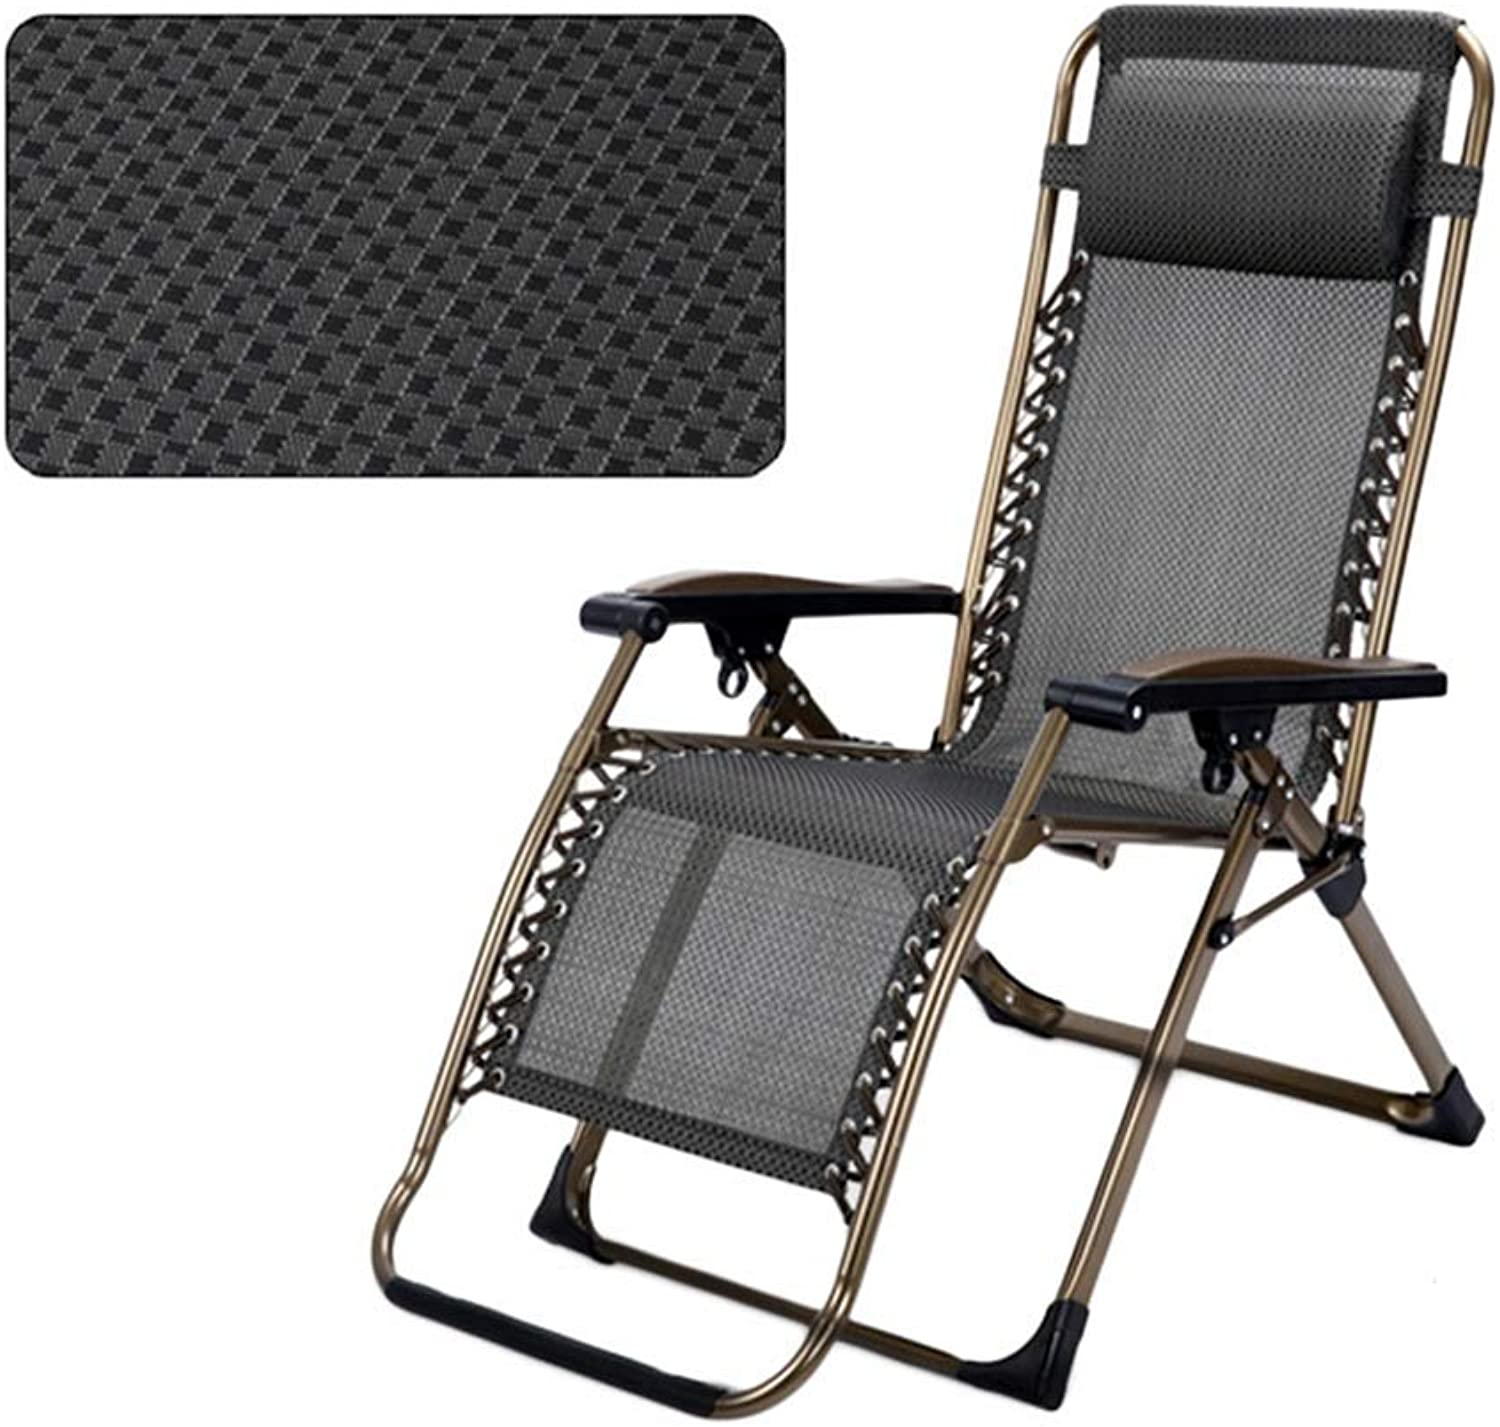 Patio Lawn Chairs Reclining with Adjustable Headrest for Heavy People, Zero Gravity Outdoor Beach Camping Portable Chair, Support 300kg,A